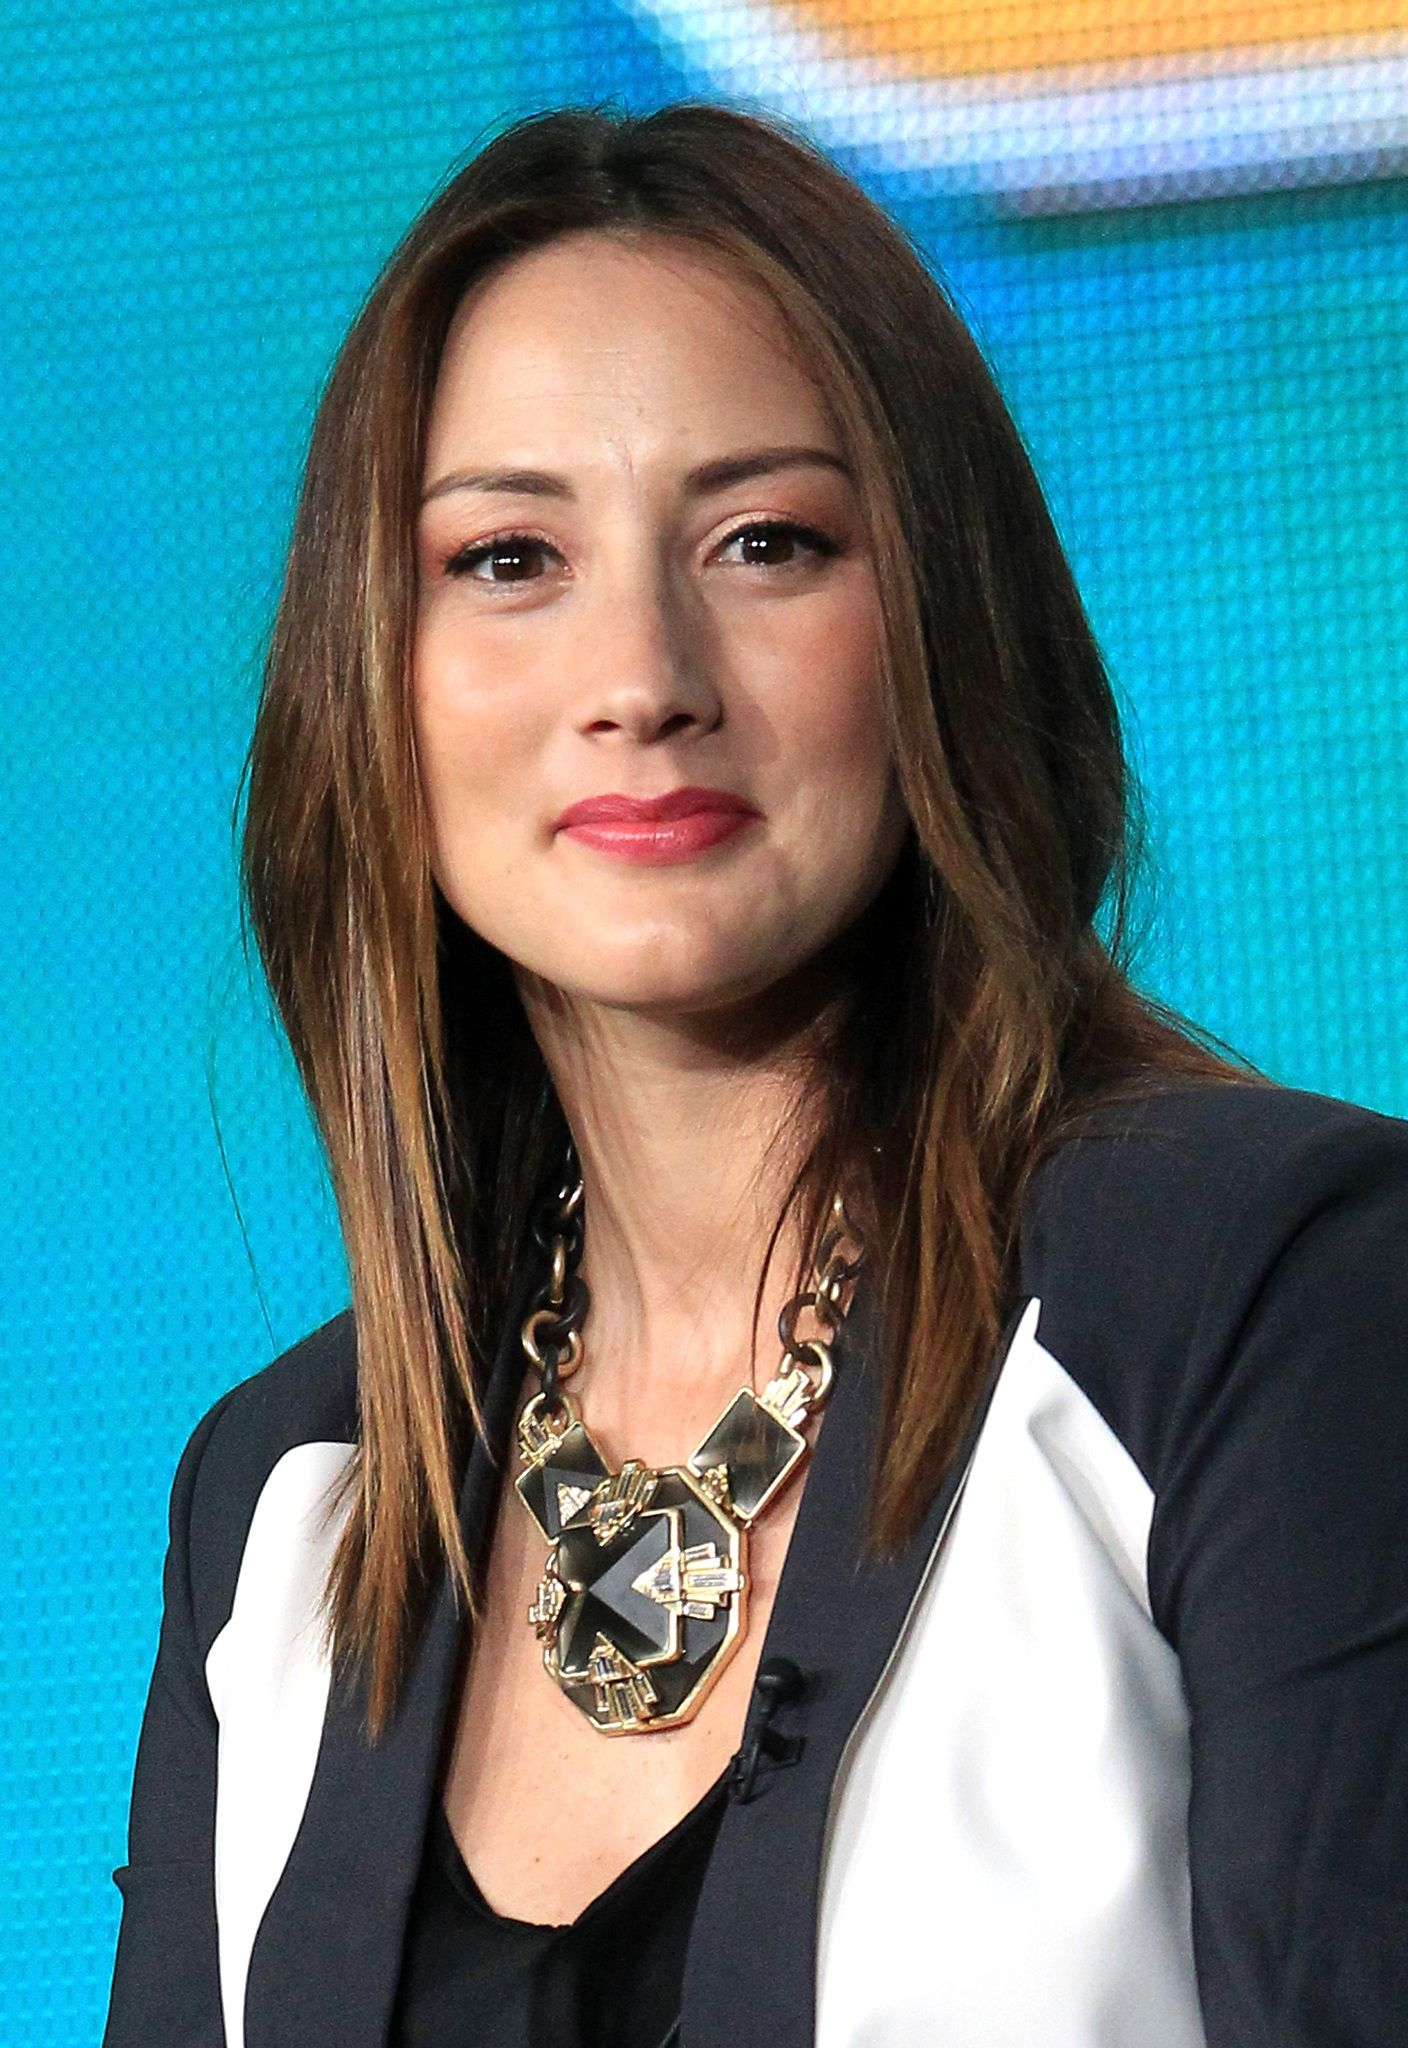 Discussion on this topic: Richa Chaddha, bree-turner/